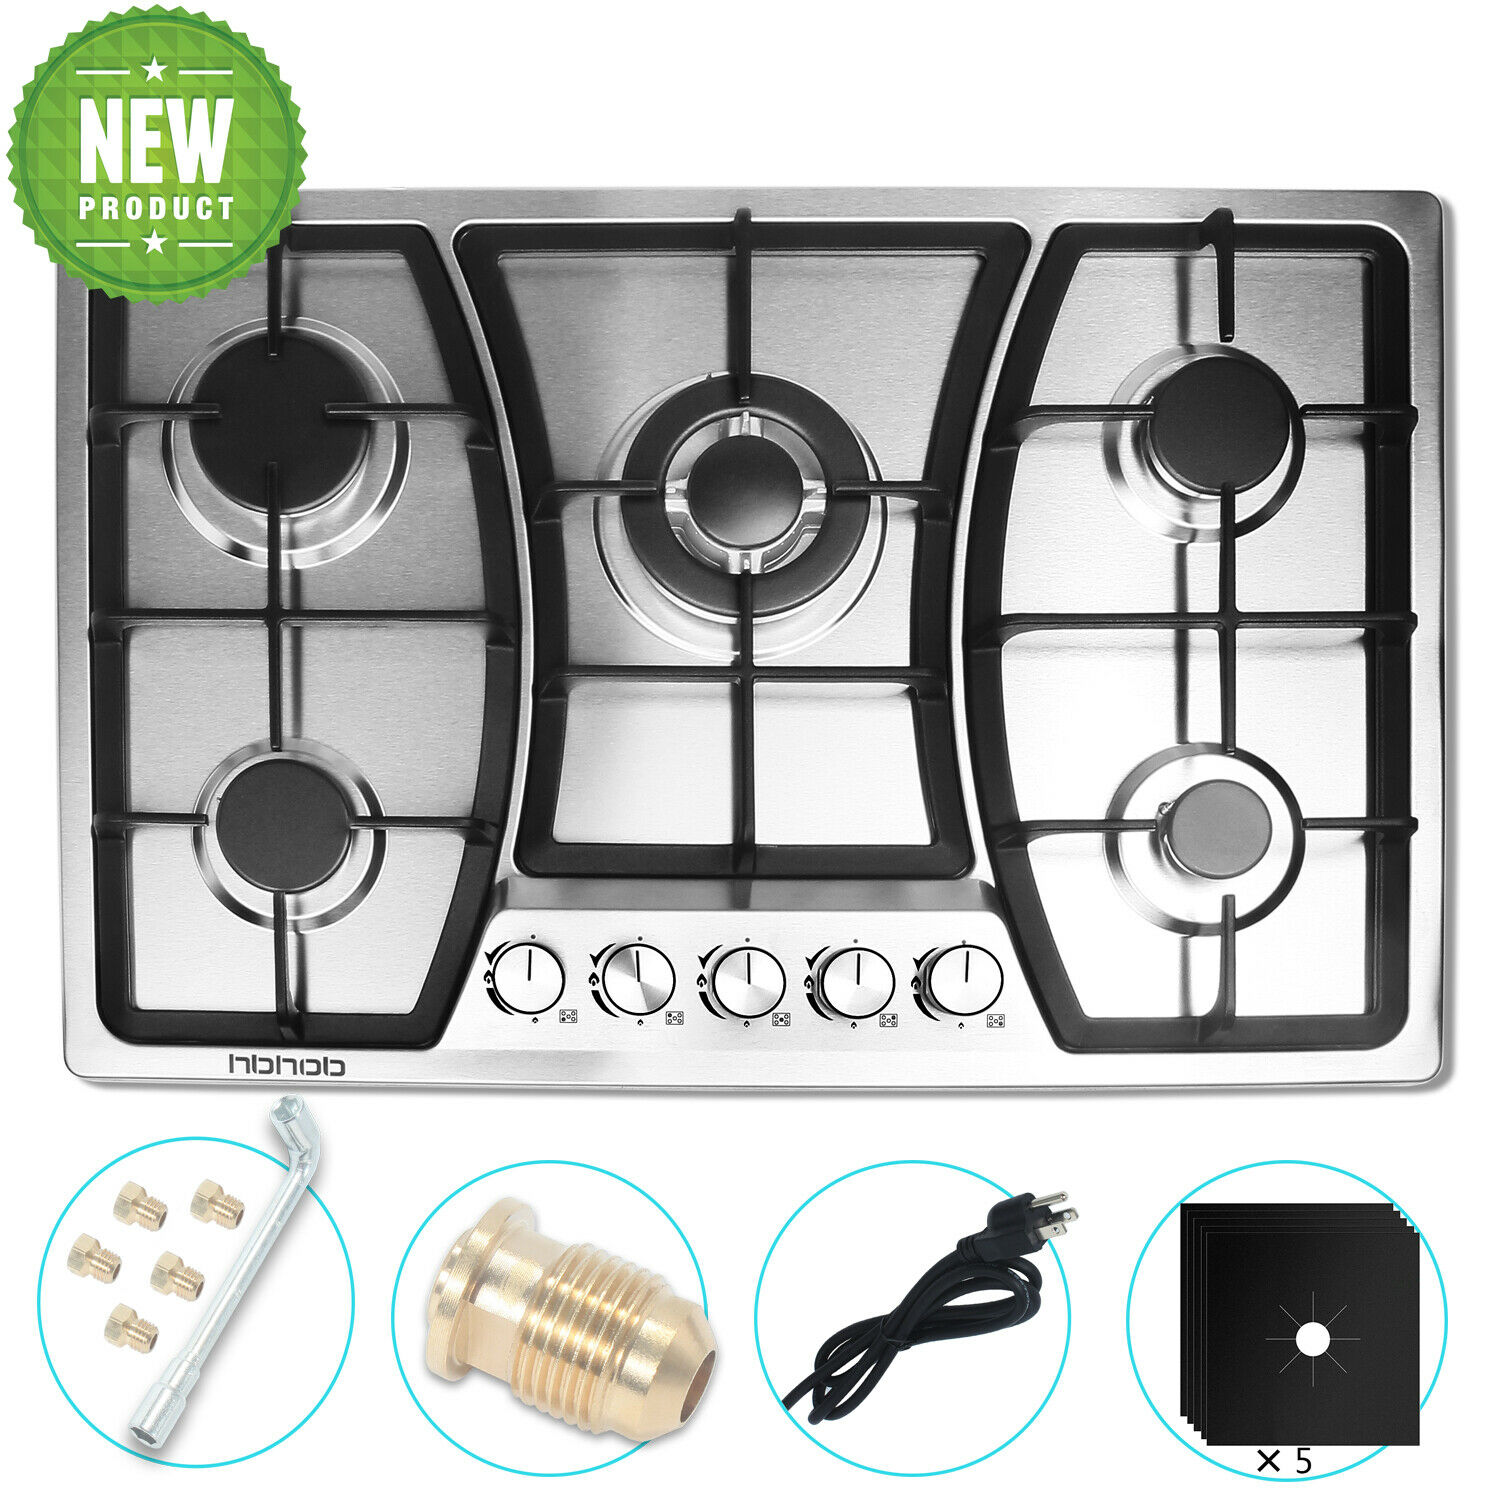 HBHOB 5 Burner 30 inches Gas Cooktop Stainless Steel LPG gas